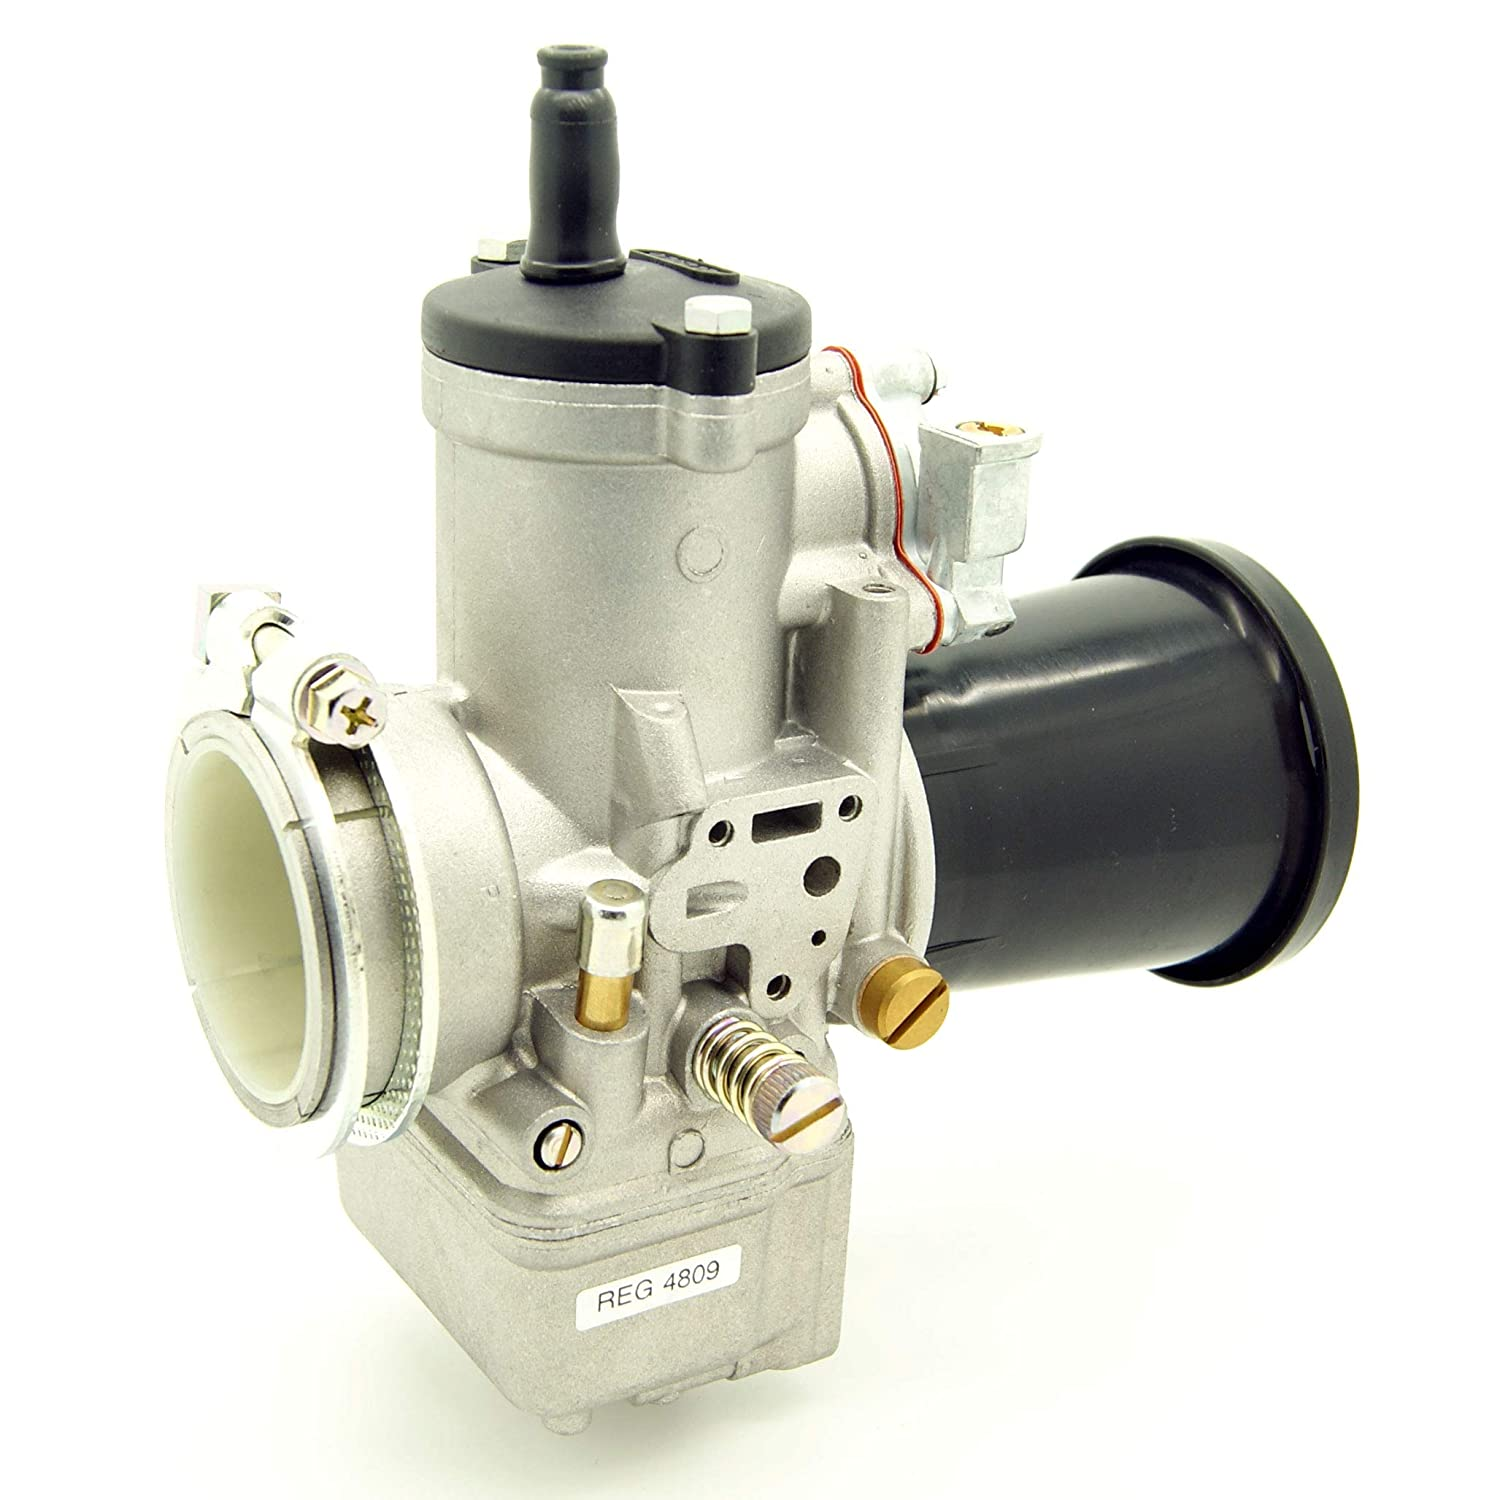 Dellorto PHM 40 AS Carburettor: Amazon co uk: Car & Motorbike